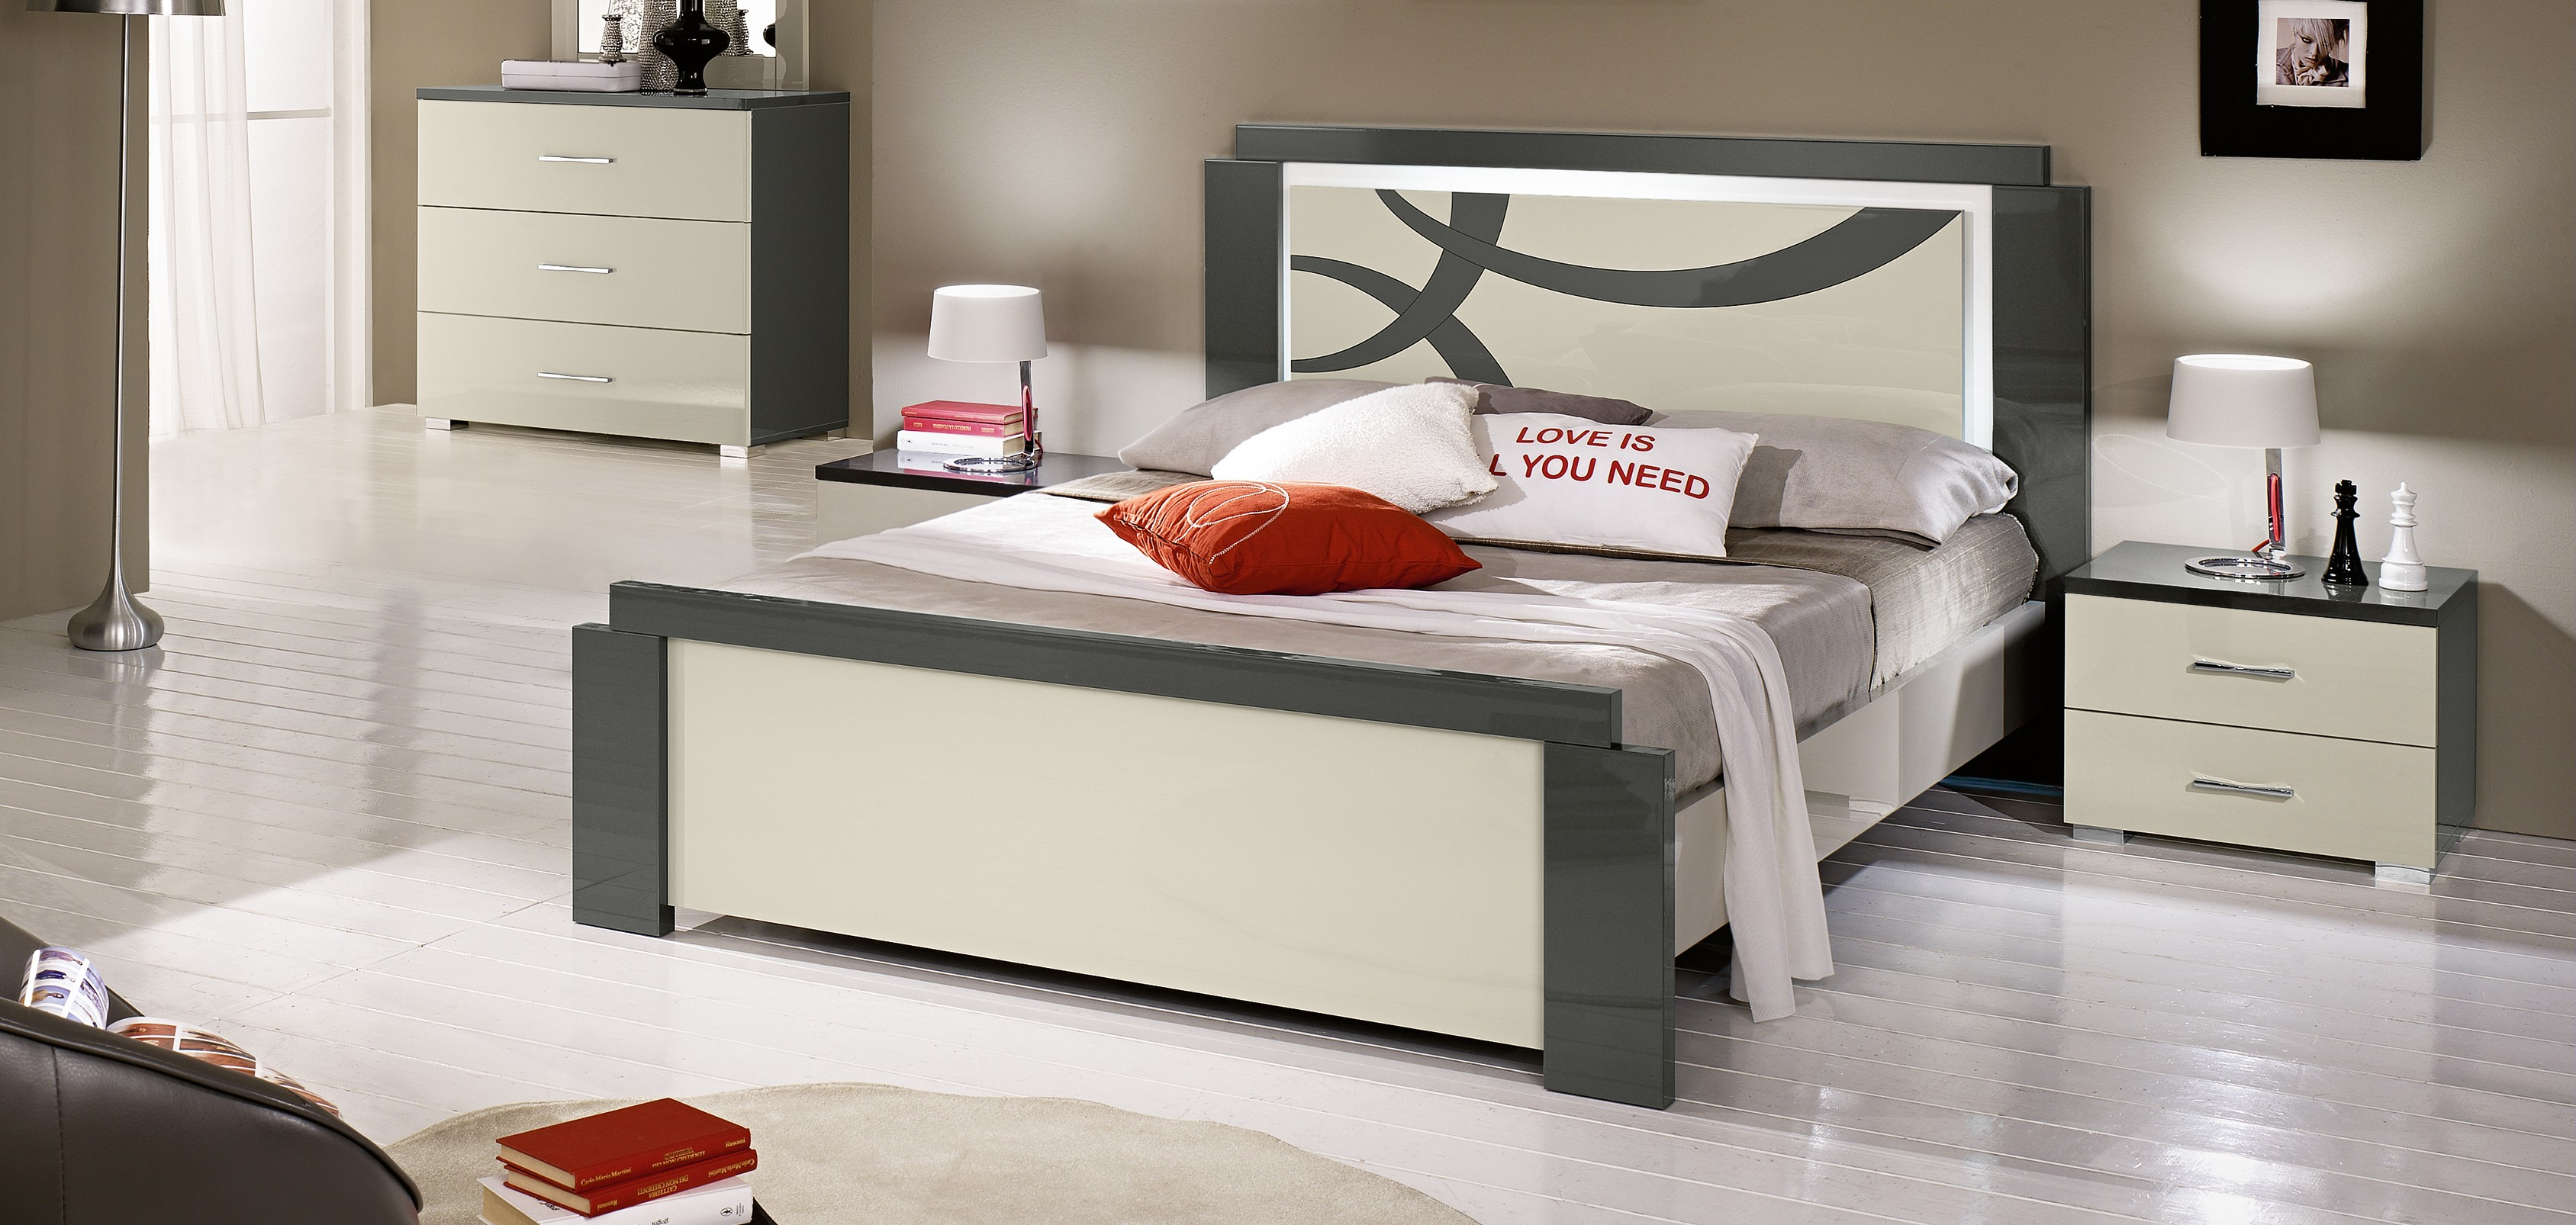 lampe argent e table basse en verre conforama. Black Bedroom Furniture Sets. Home Design Ideas